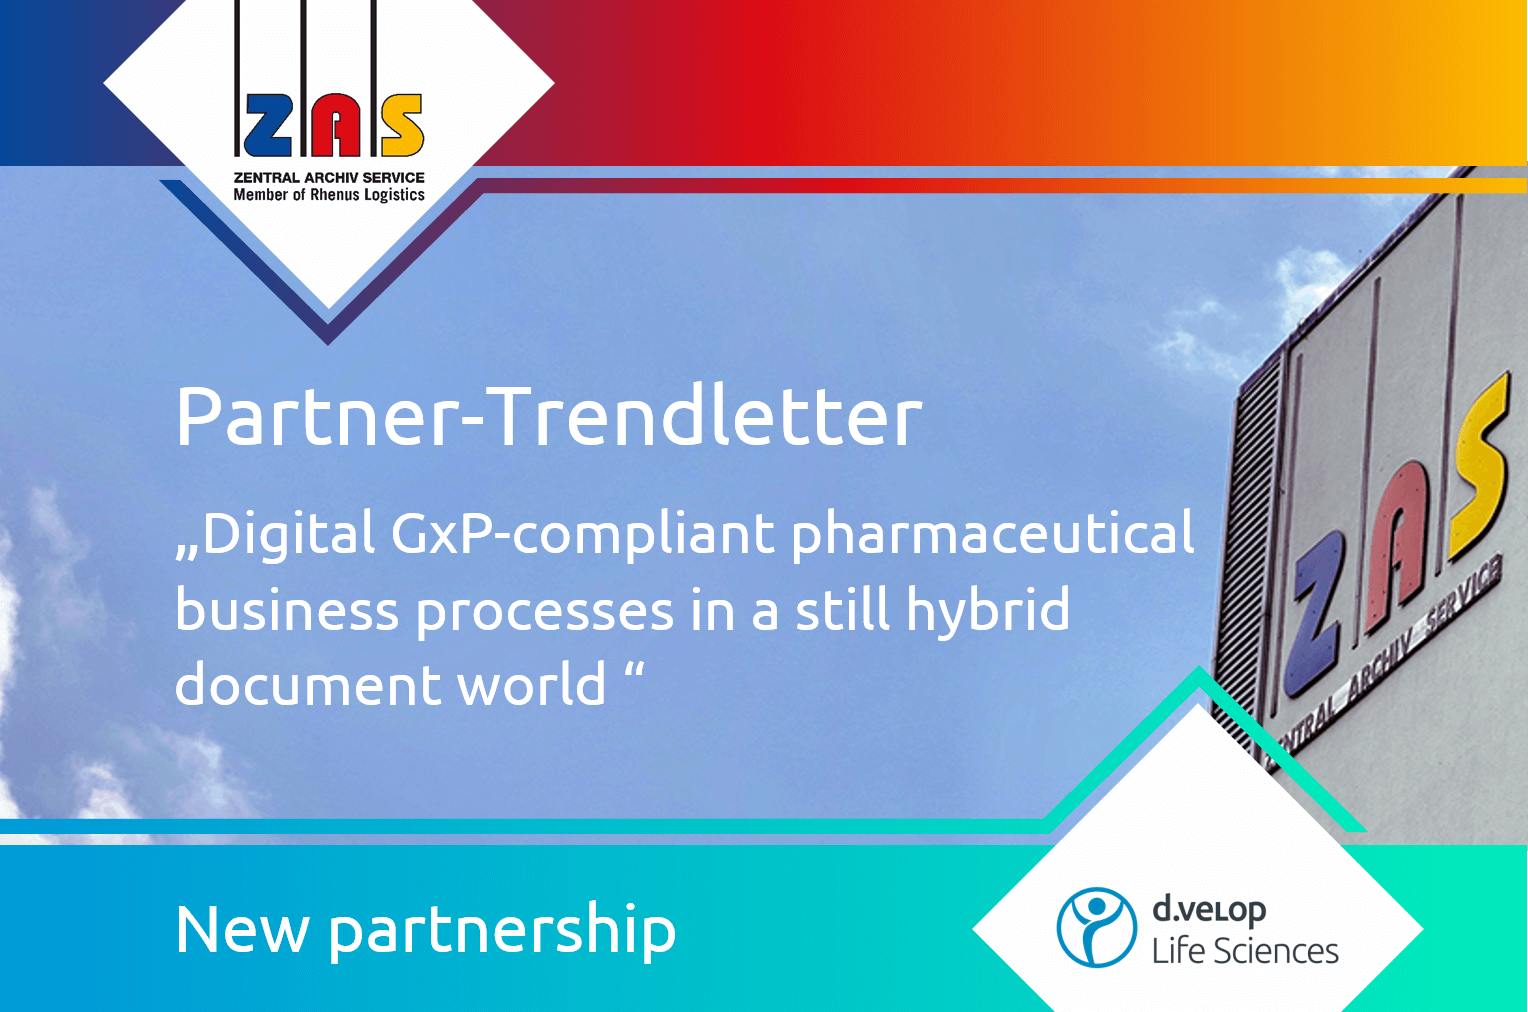 New partnership between d.velop and Z.A.S. Zentral Archiv Service. Partner Trendletter about digital GxP-compliant pharmaceutical business processes in a still hybrid document world